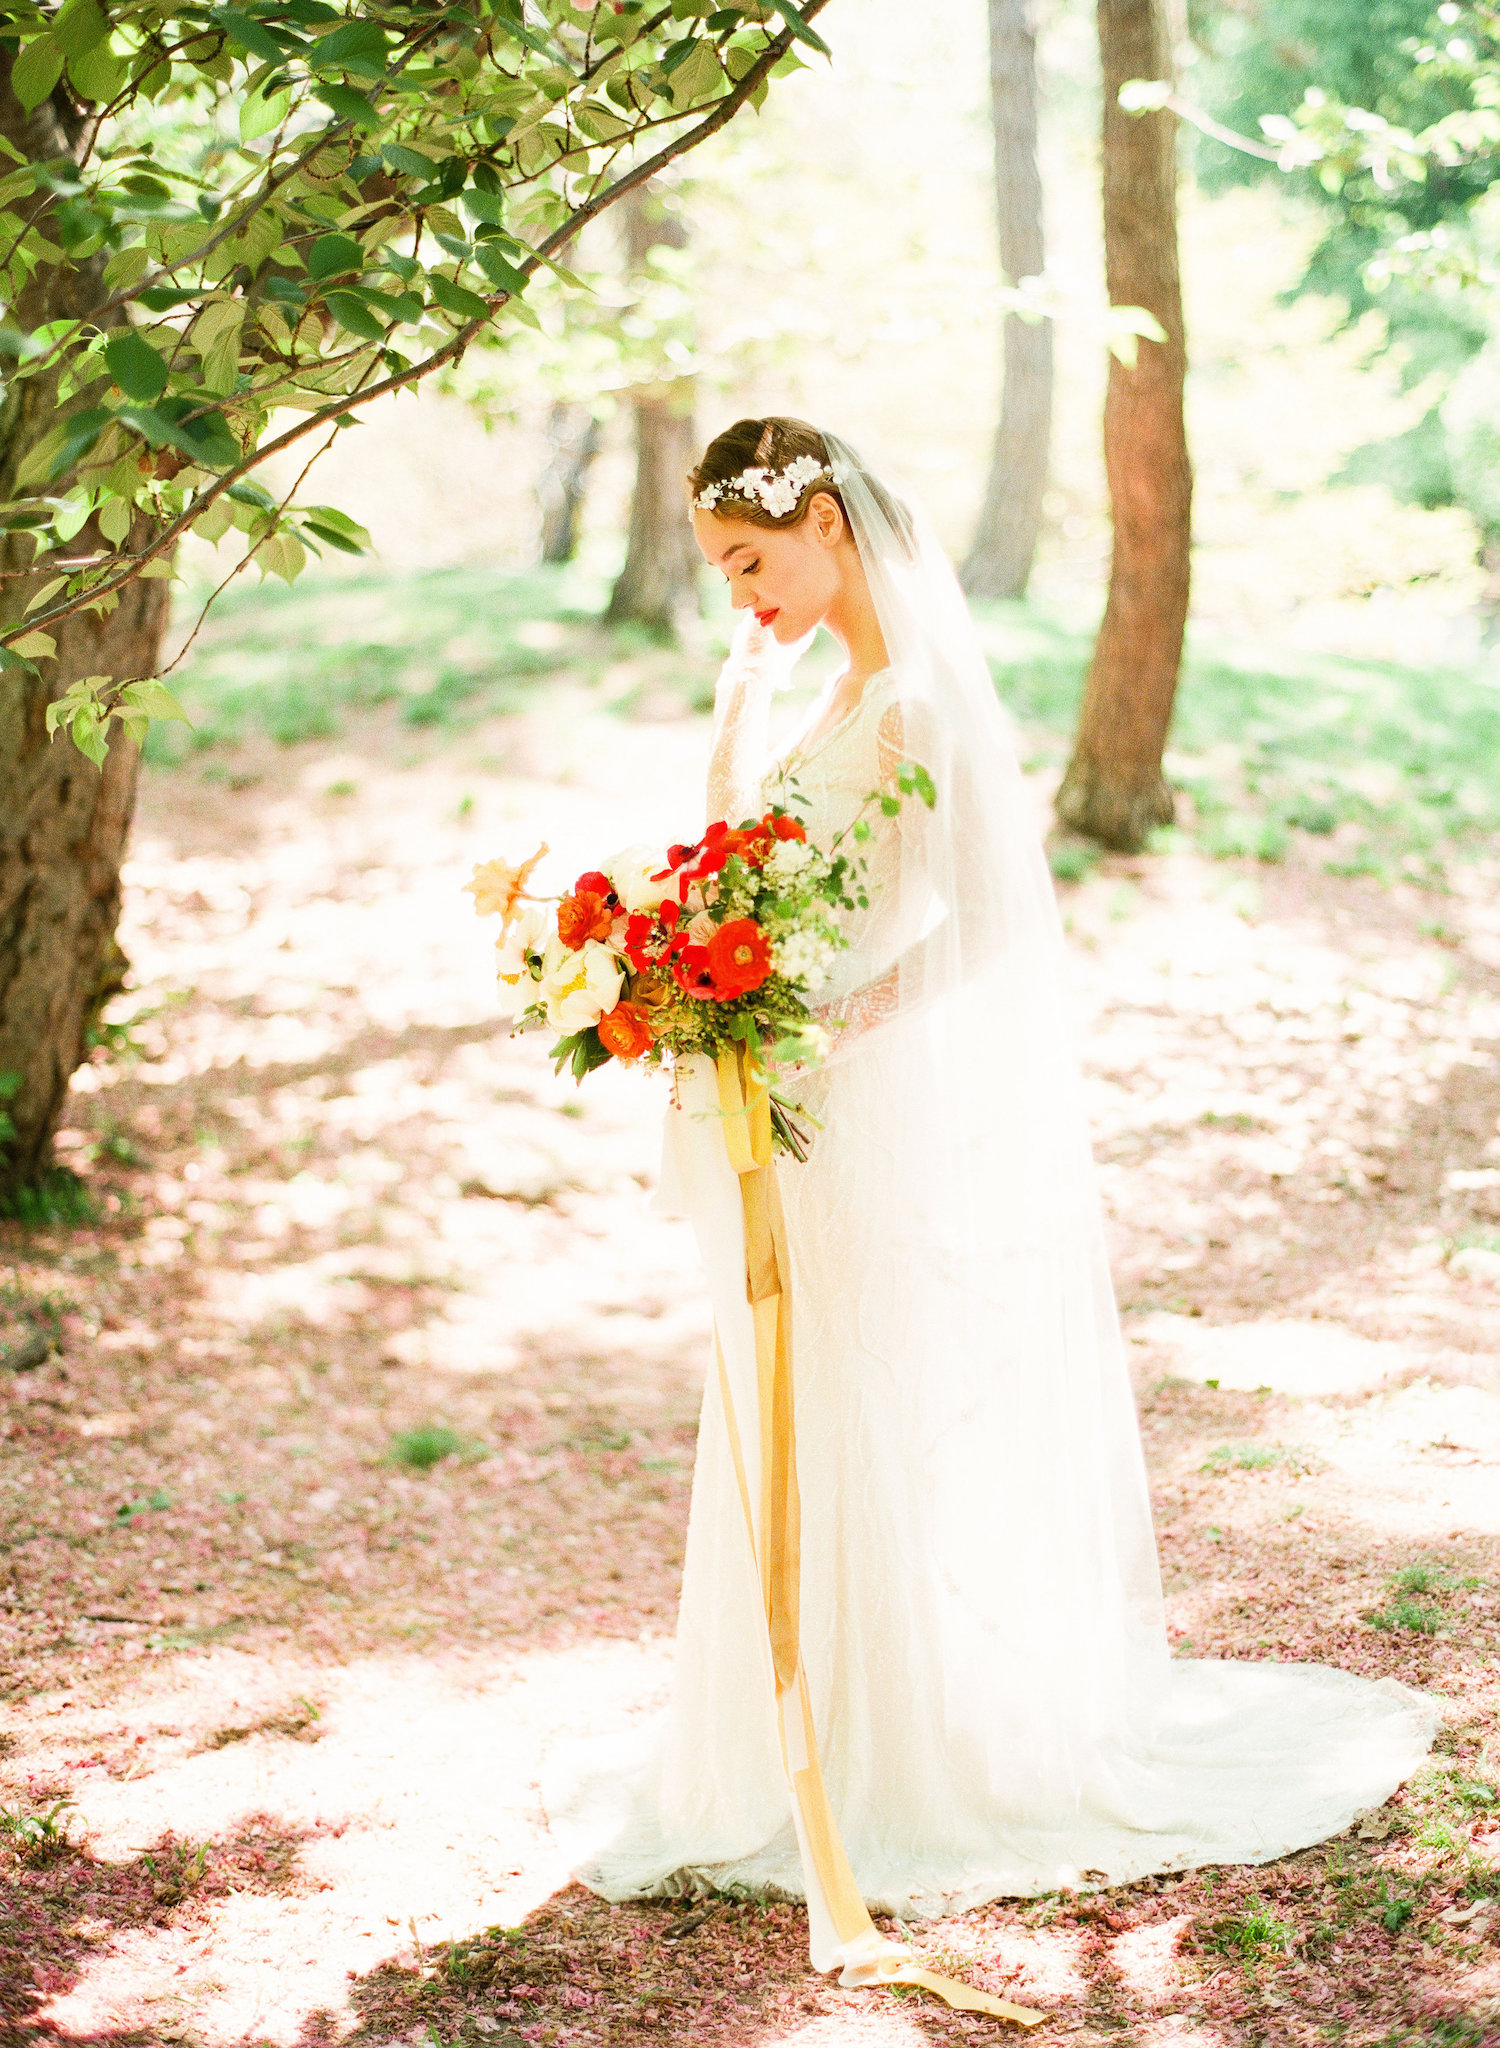 Morning Glow - Full Aperture Floral & Lindsay Madden Photography 12.jpeg